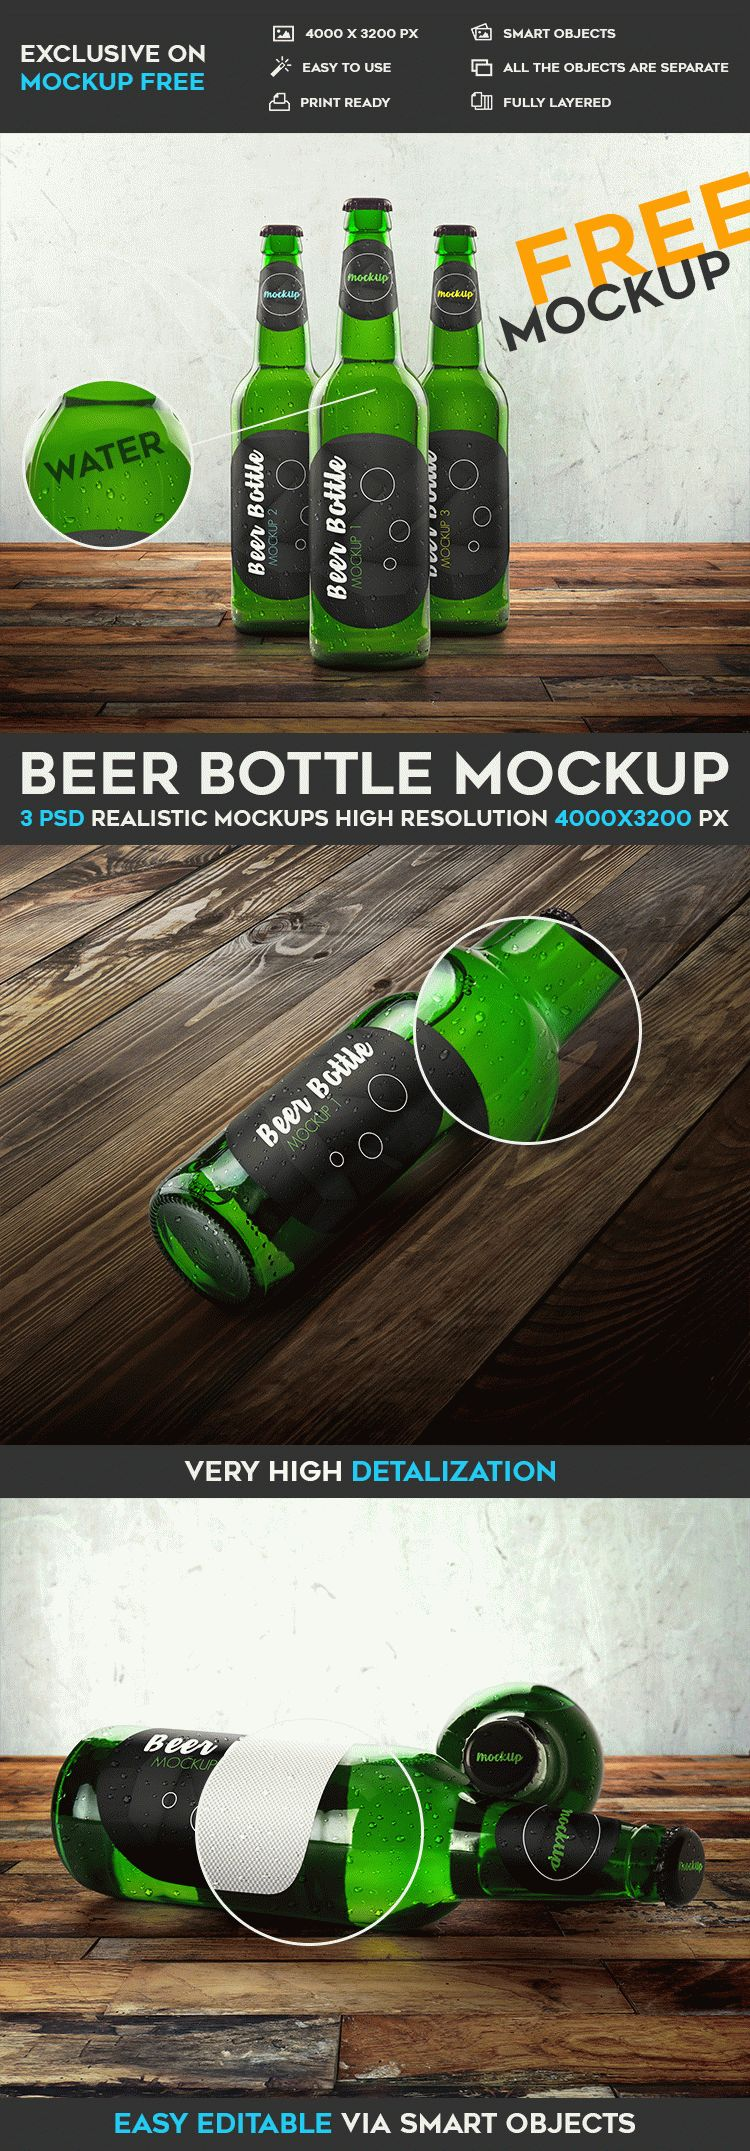 bigpreview_beer-bottle